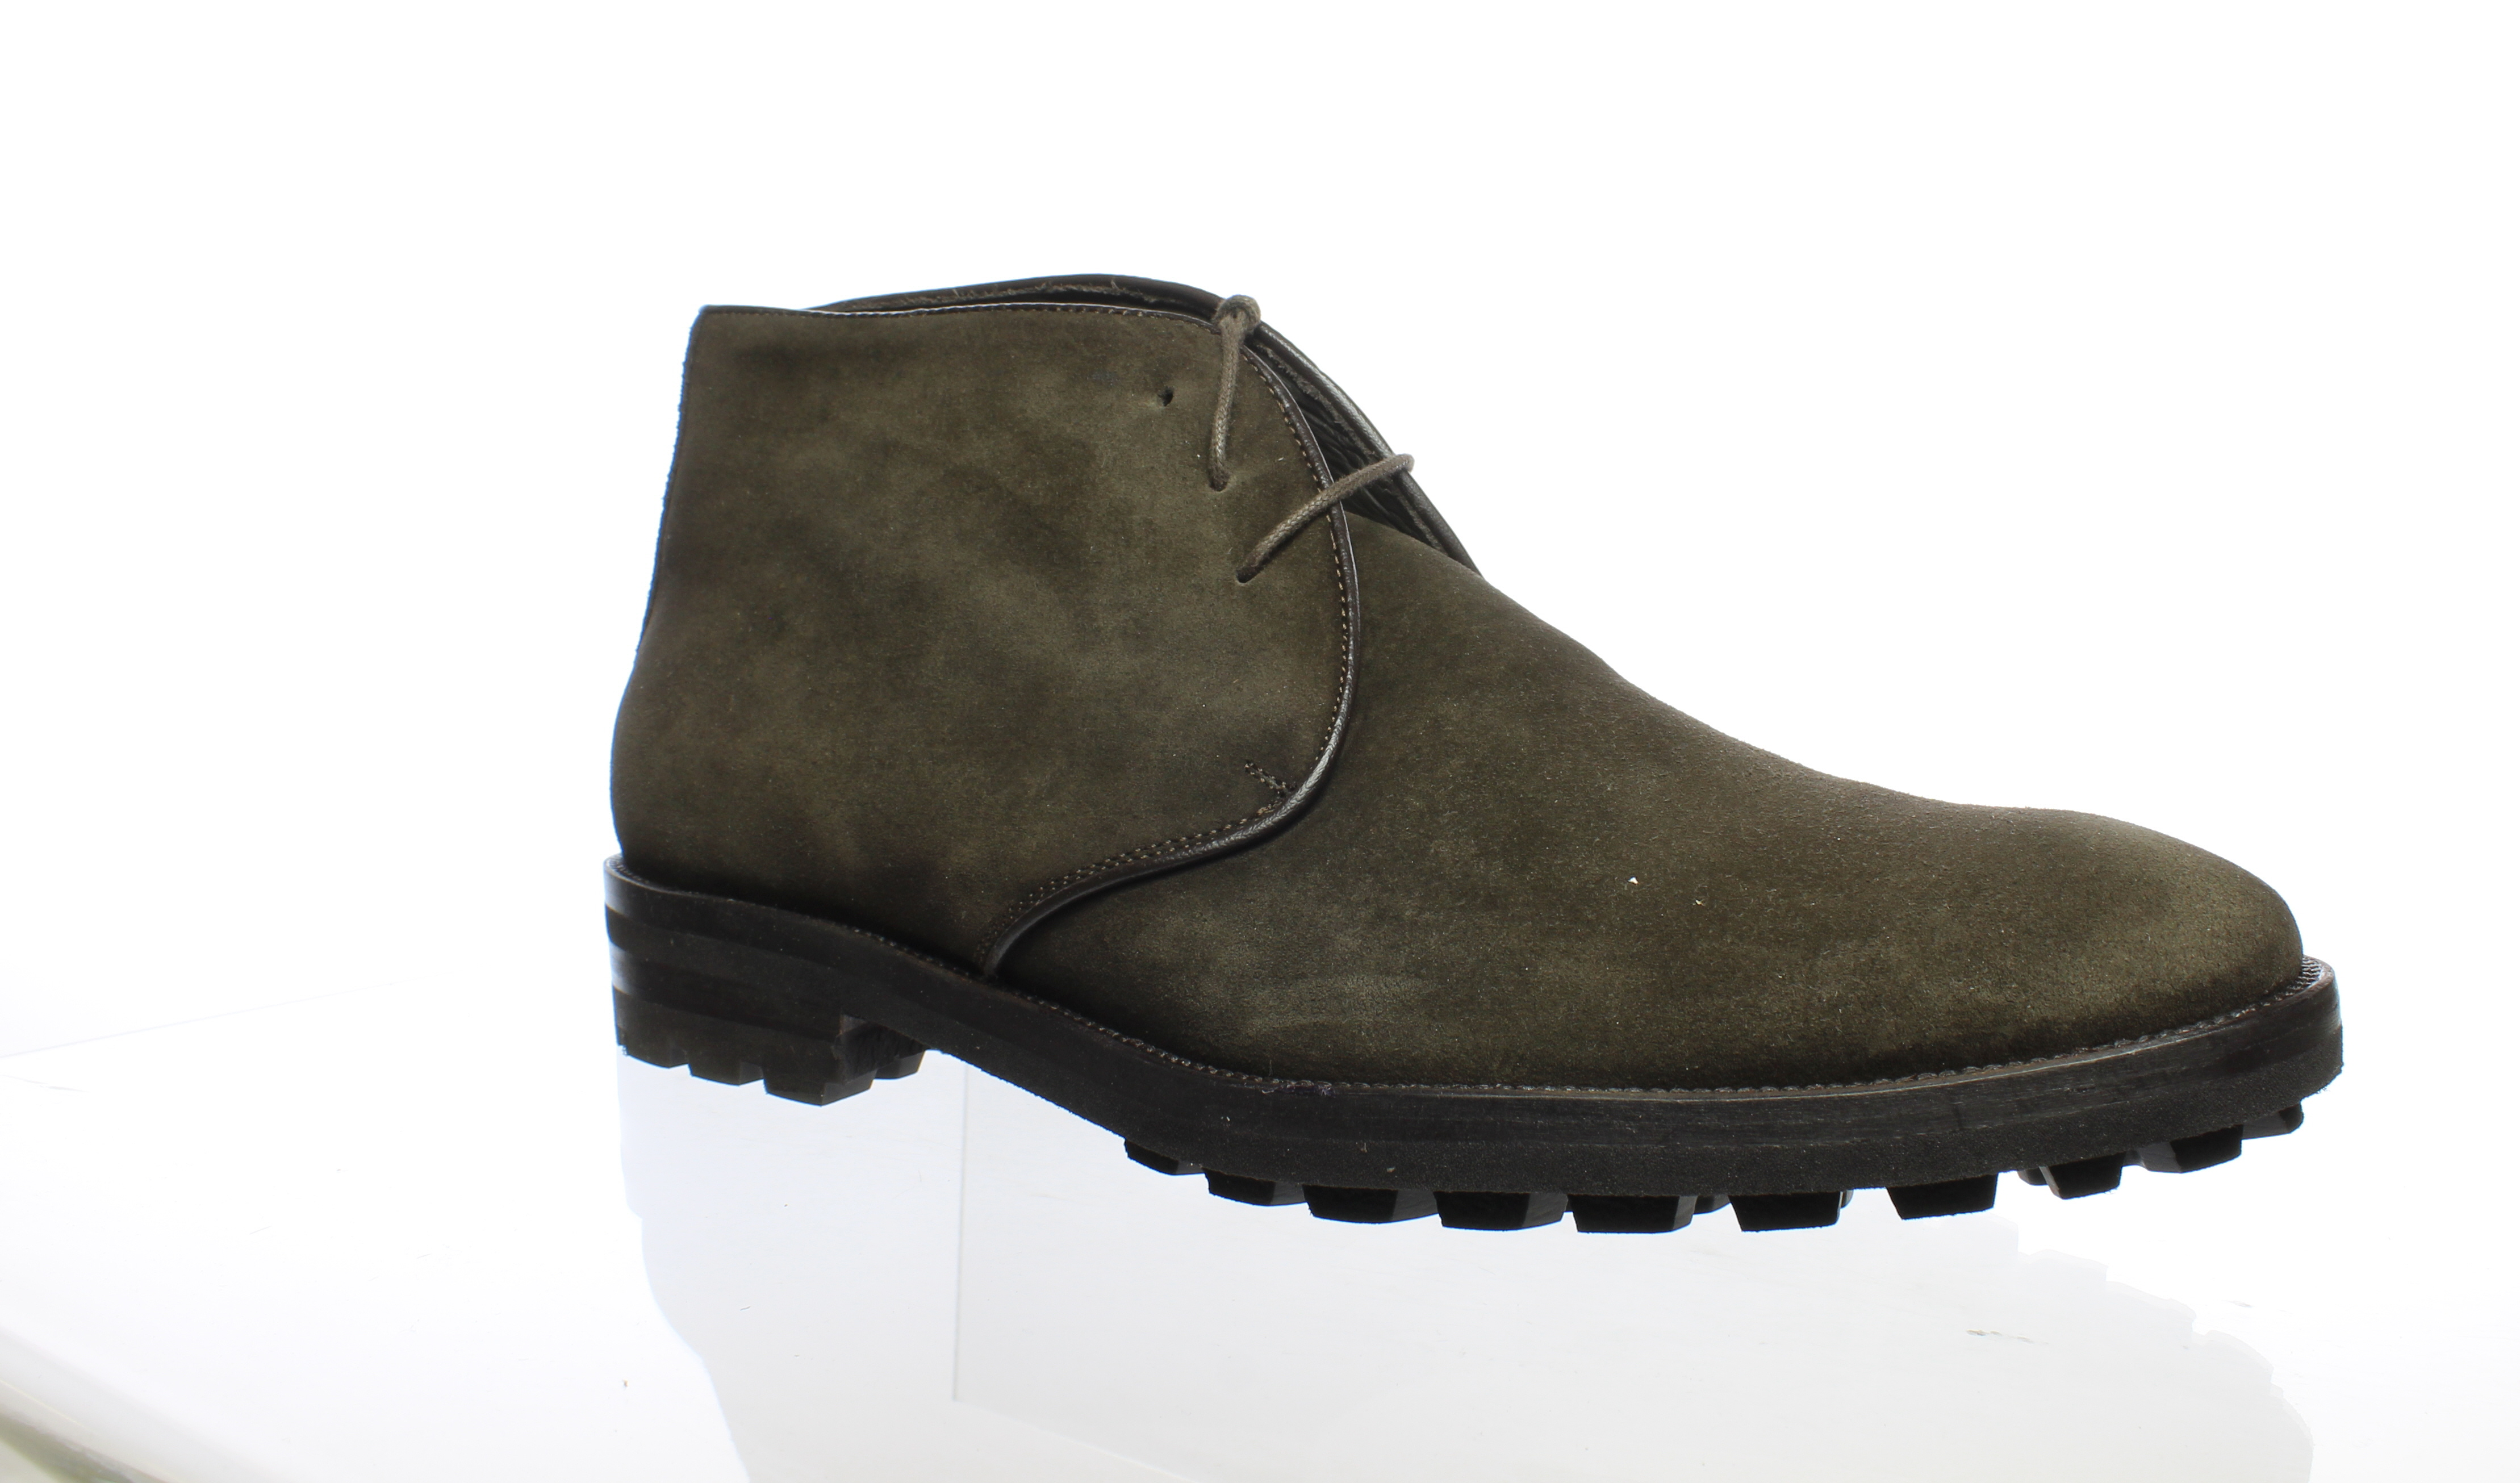 cd2e30bc29ad To Boot New York Mens Phipps Brown Ankle Boots Size 11 (258447 ...